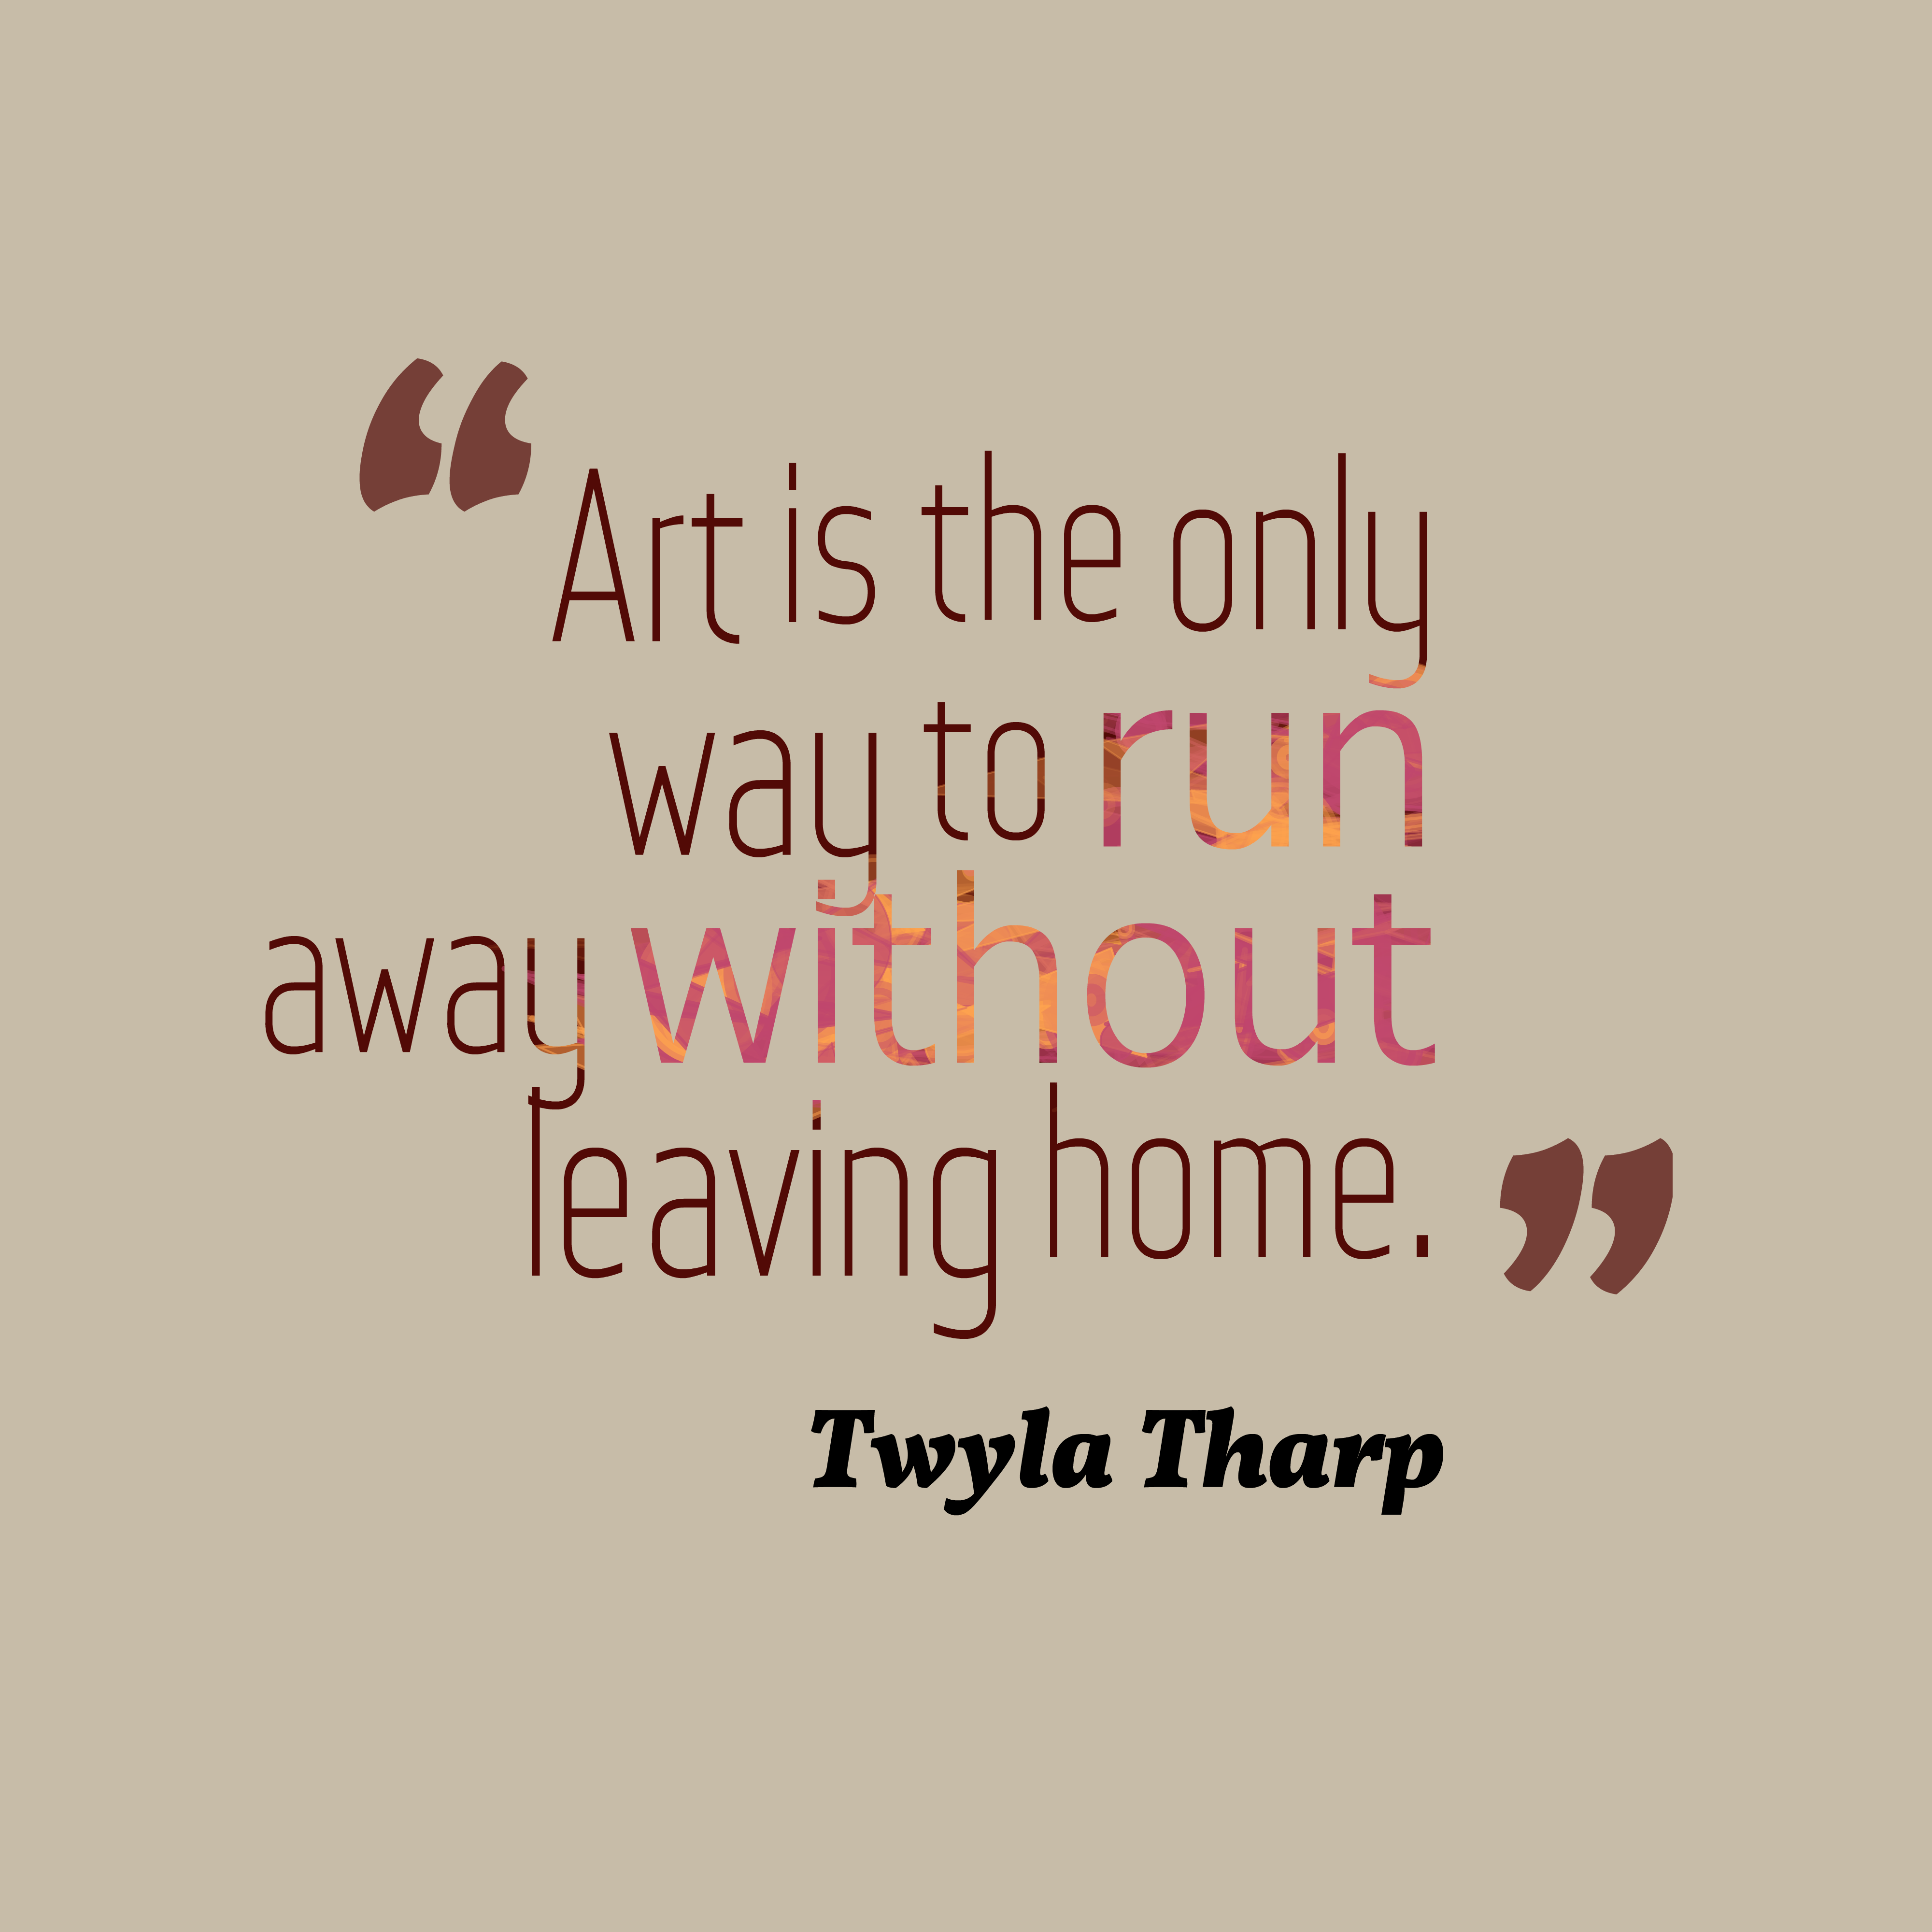 Picture » Twyla Tharp Quote About Art